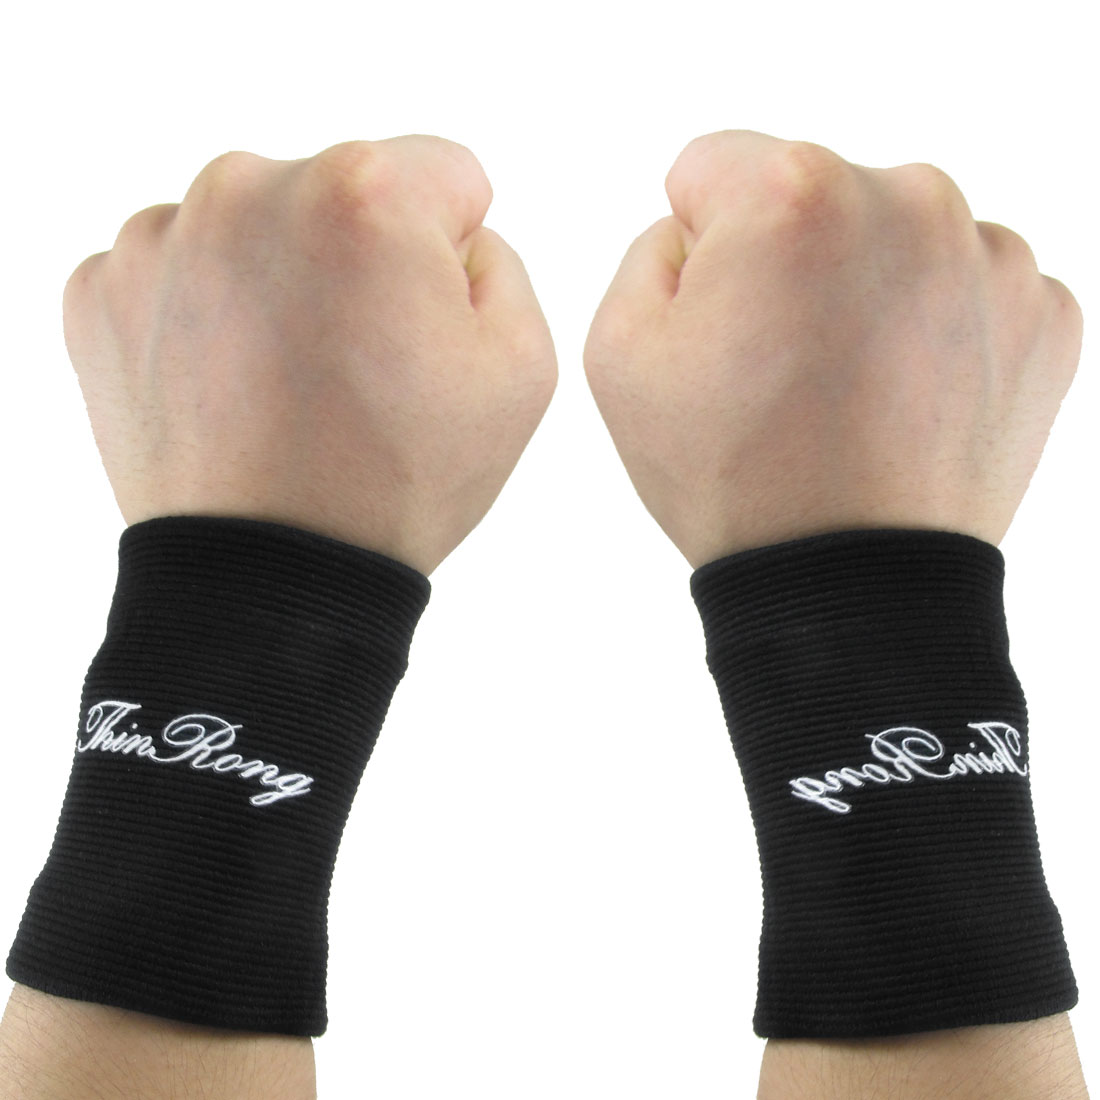 1 Pair Volleyball Black Stretchy Protective Gear Wrist Support